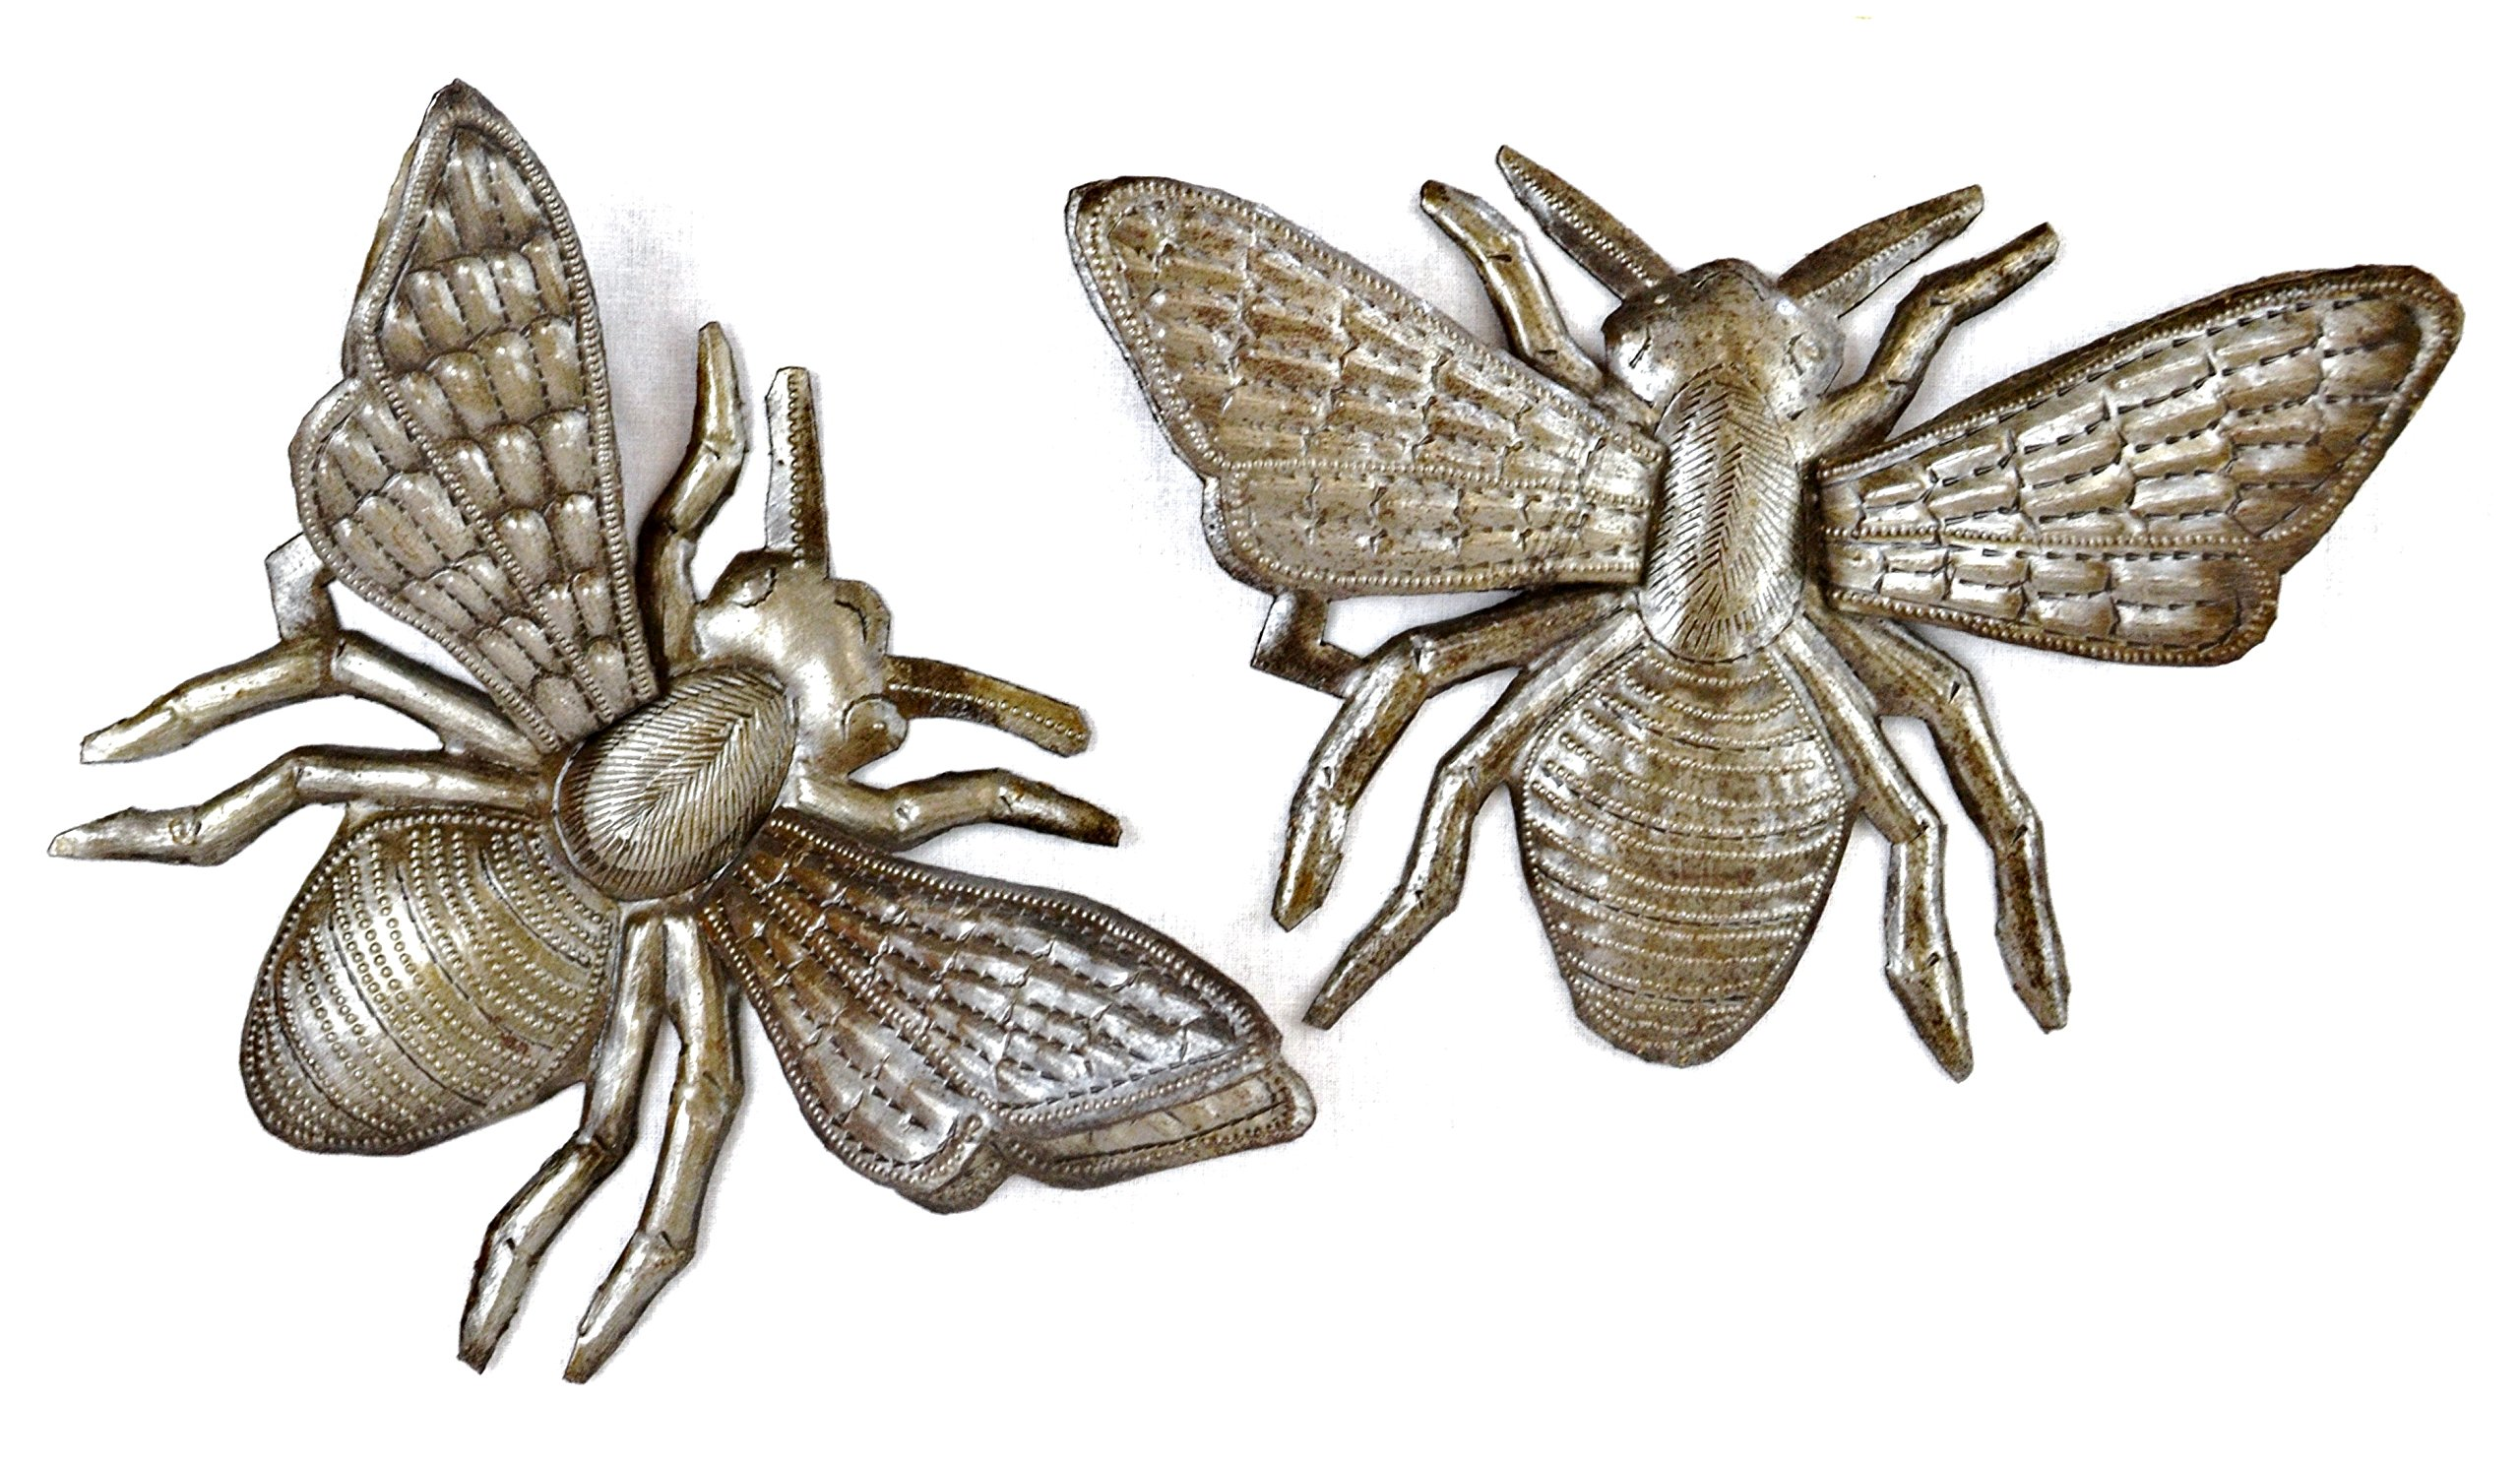 Buzzing Around Bumble Bee, Set of 2 Haitian Metal Bugs Wall Art, Unique Decorative Garden Insects Home Decor Recycled Haitian Art (Bees)